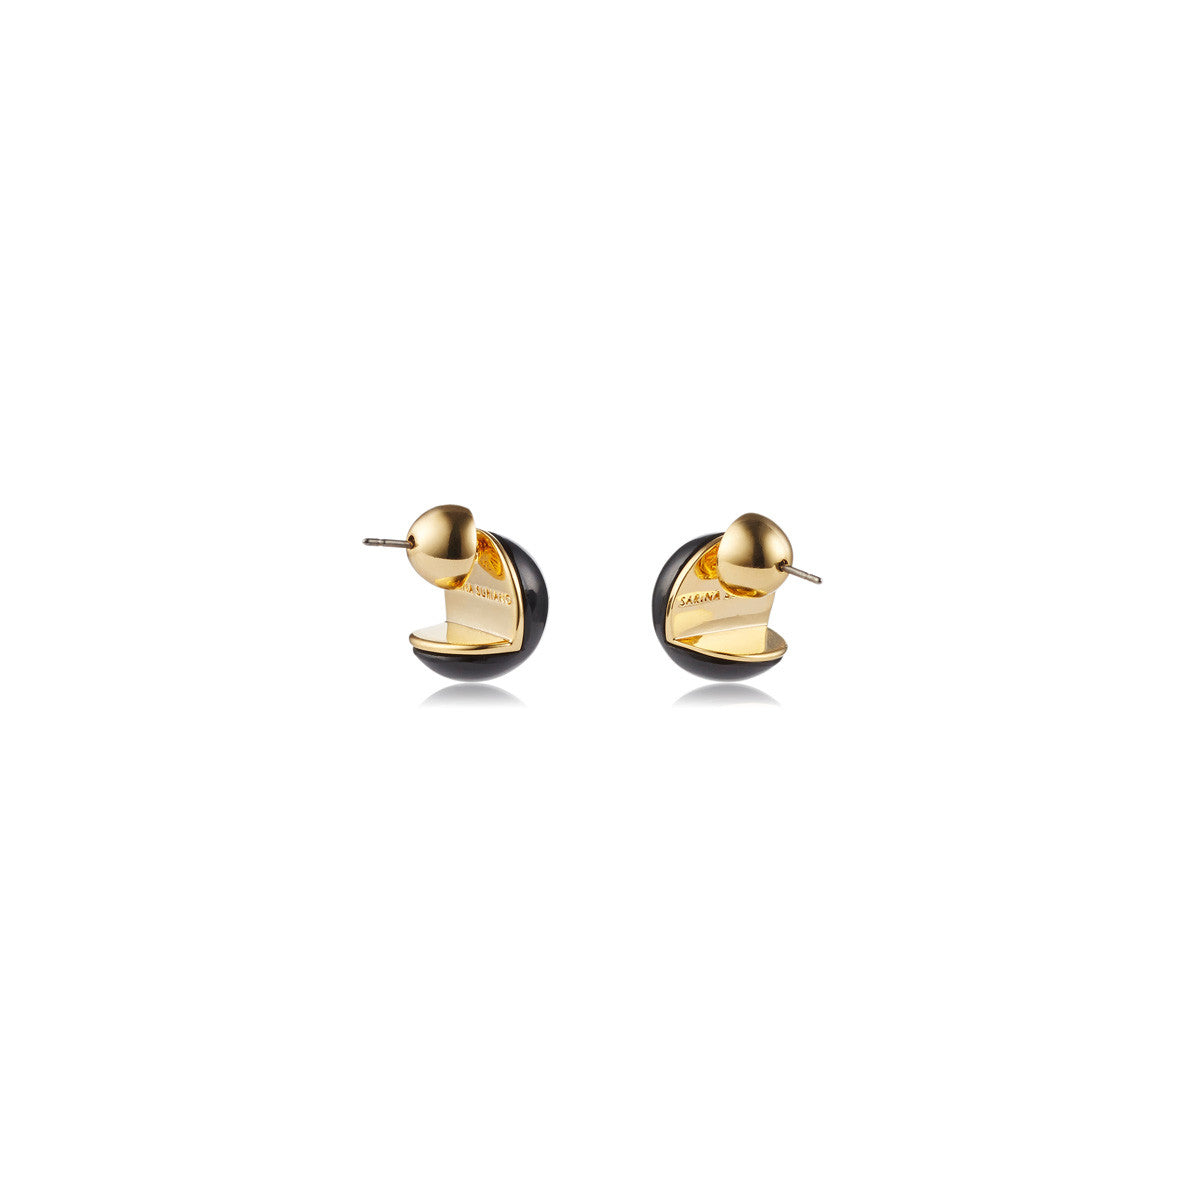 Solid brass, 18K gold plated Cava stud earrings in black onyx – back